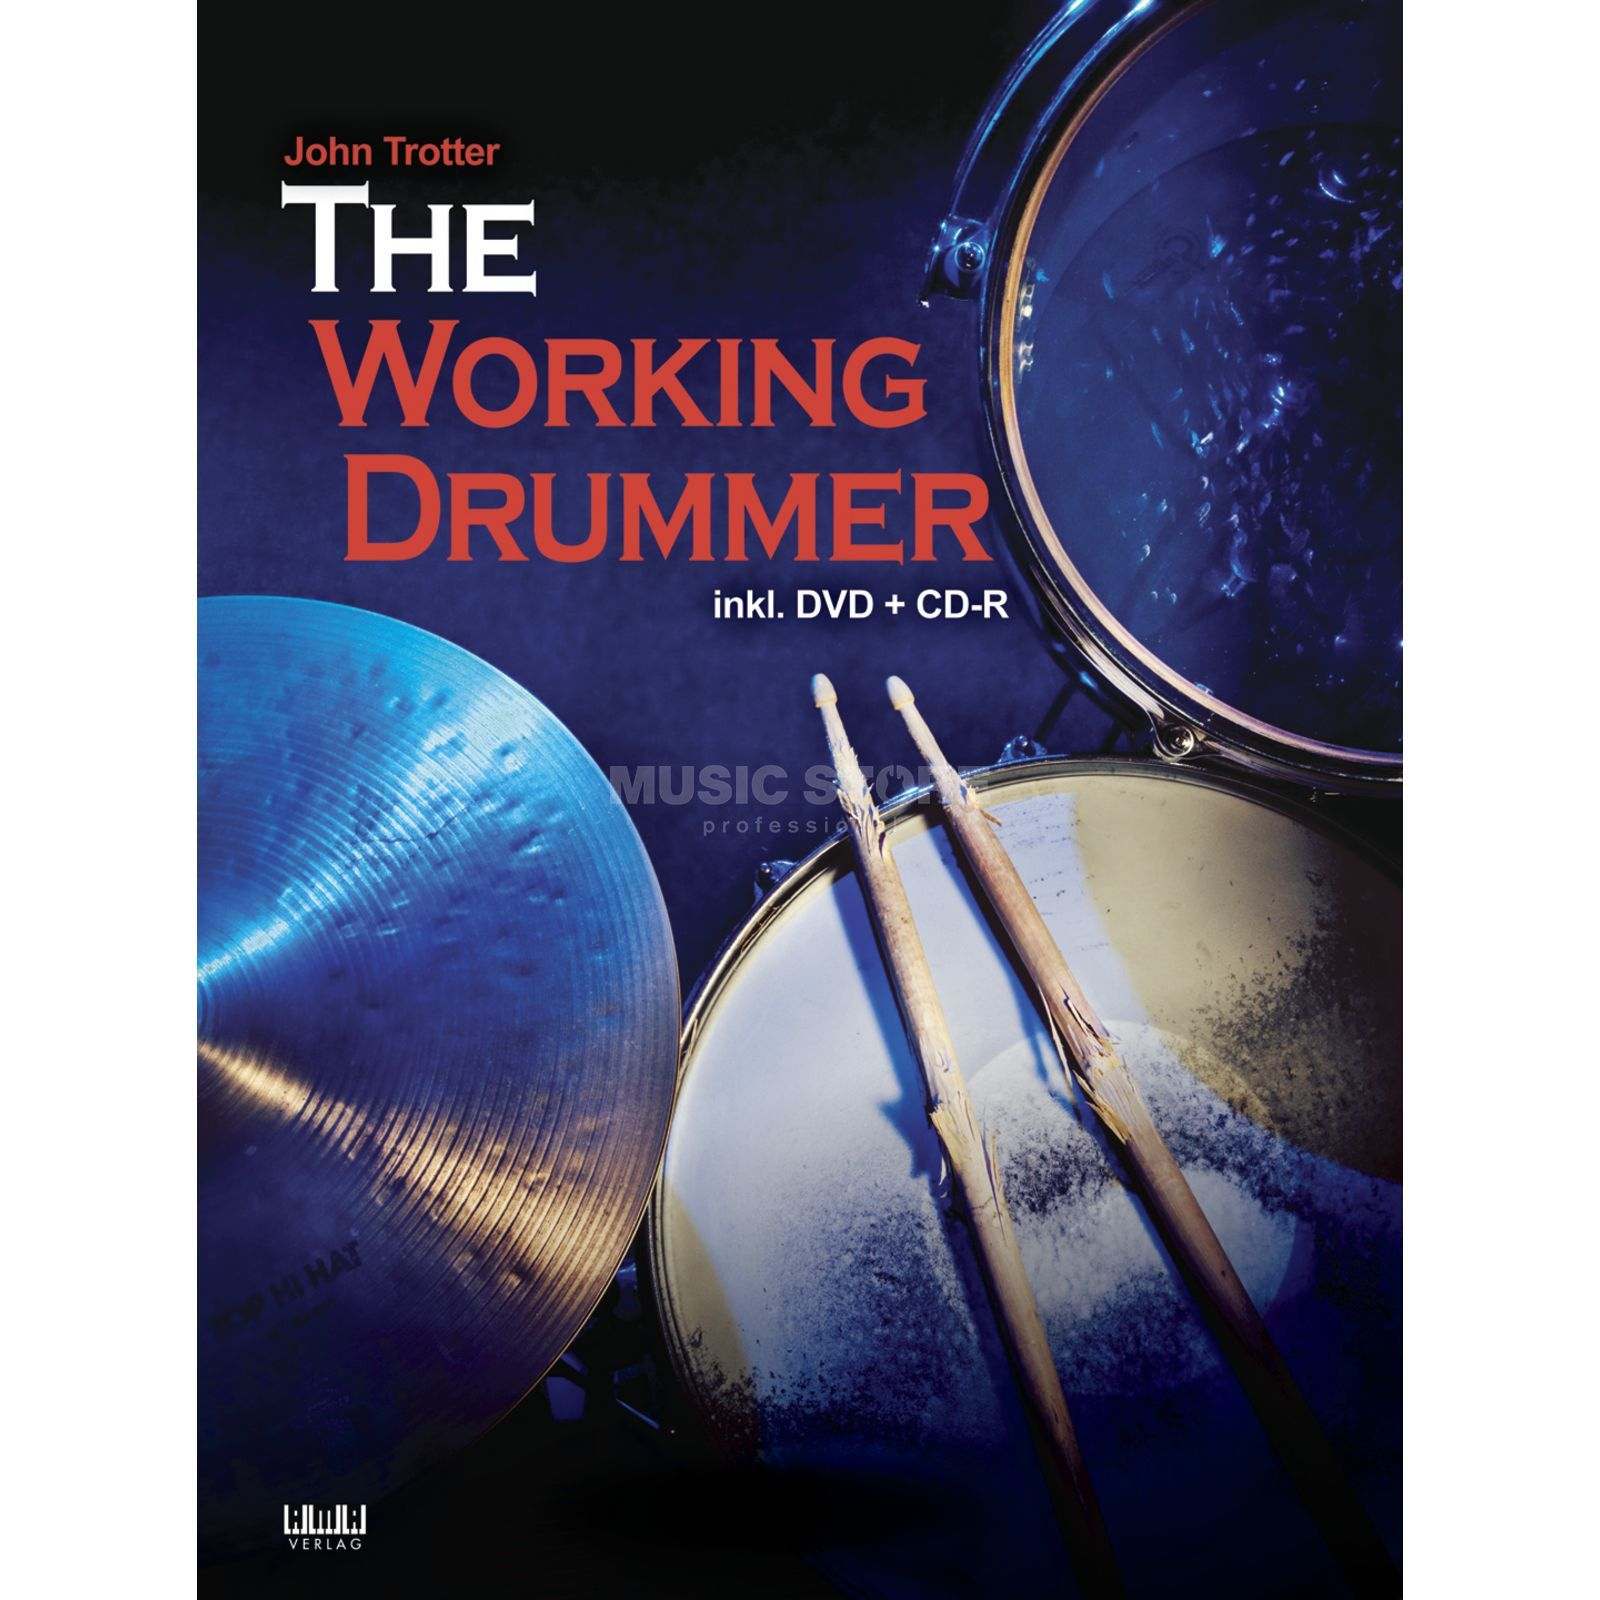 AMA Verlag The Working Drummer John Trotter, inkl. DVD+CD-R Produktbild